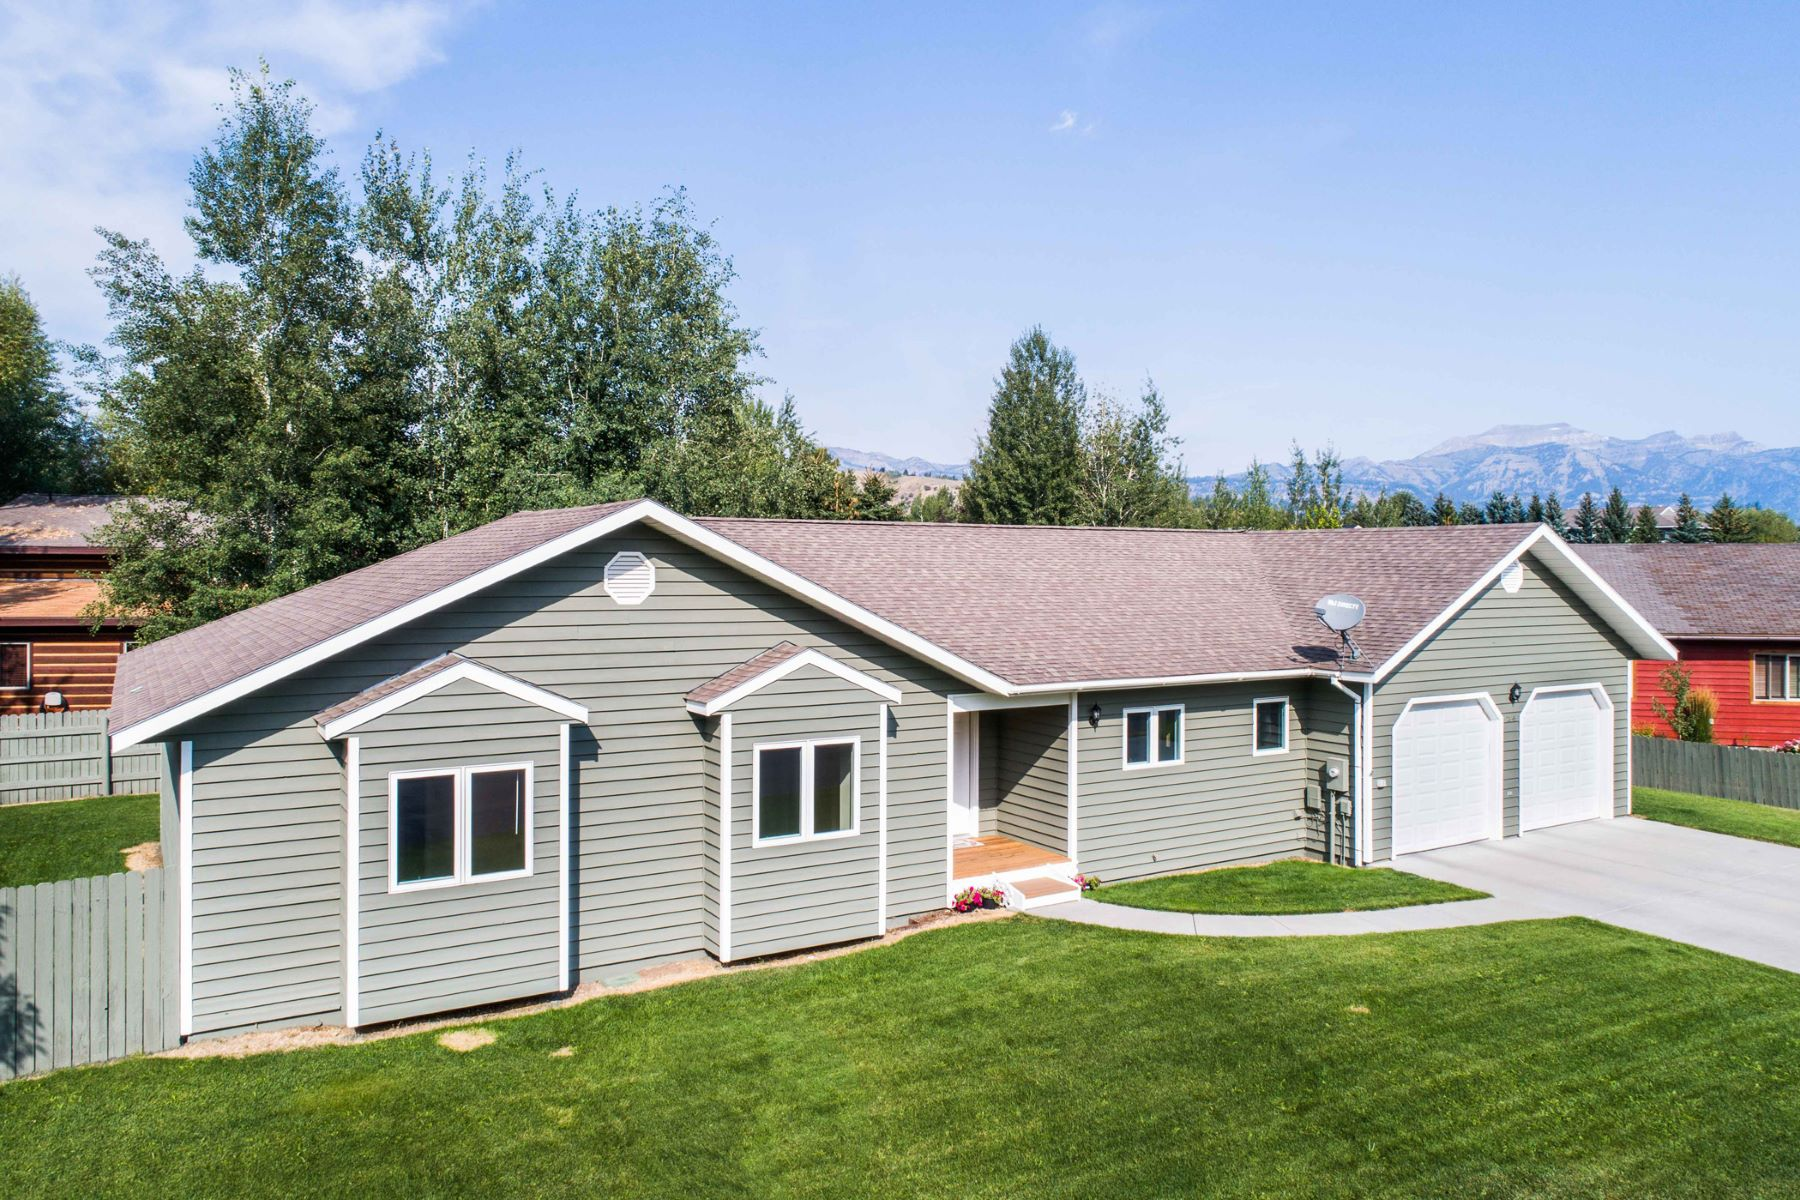 Single Family Home for Sale at Cottonwood Park Home 2146 Corner Creek Lane, Jackson, Wyoming, 83001 Jackson Hole, United States